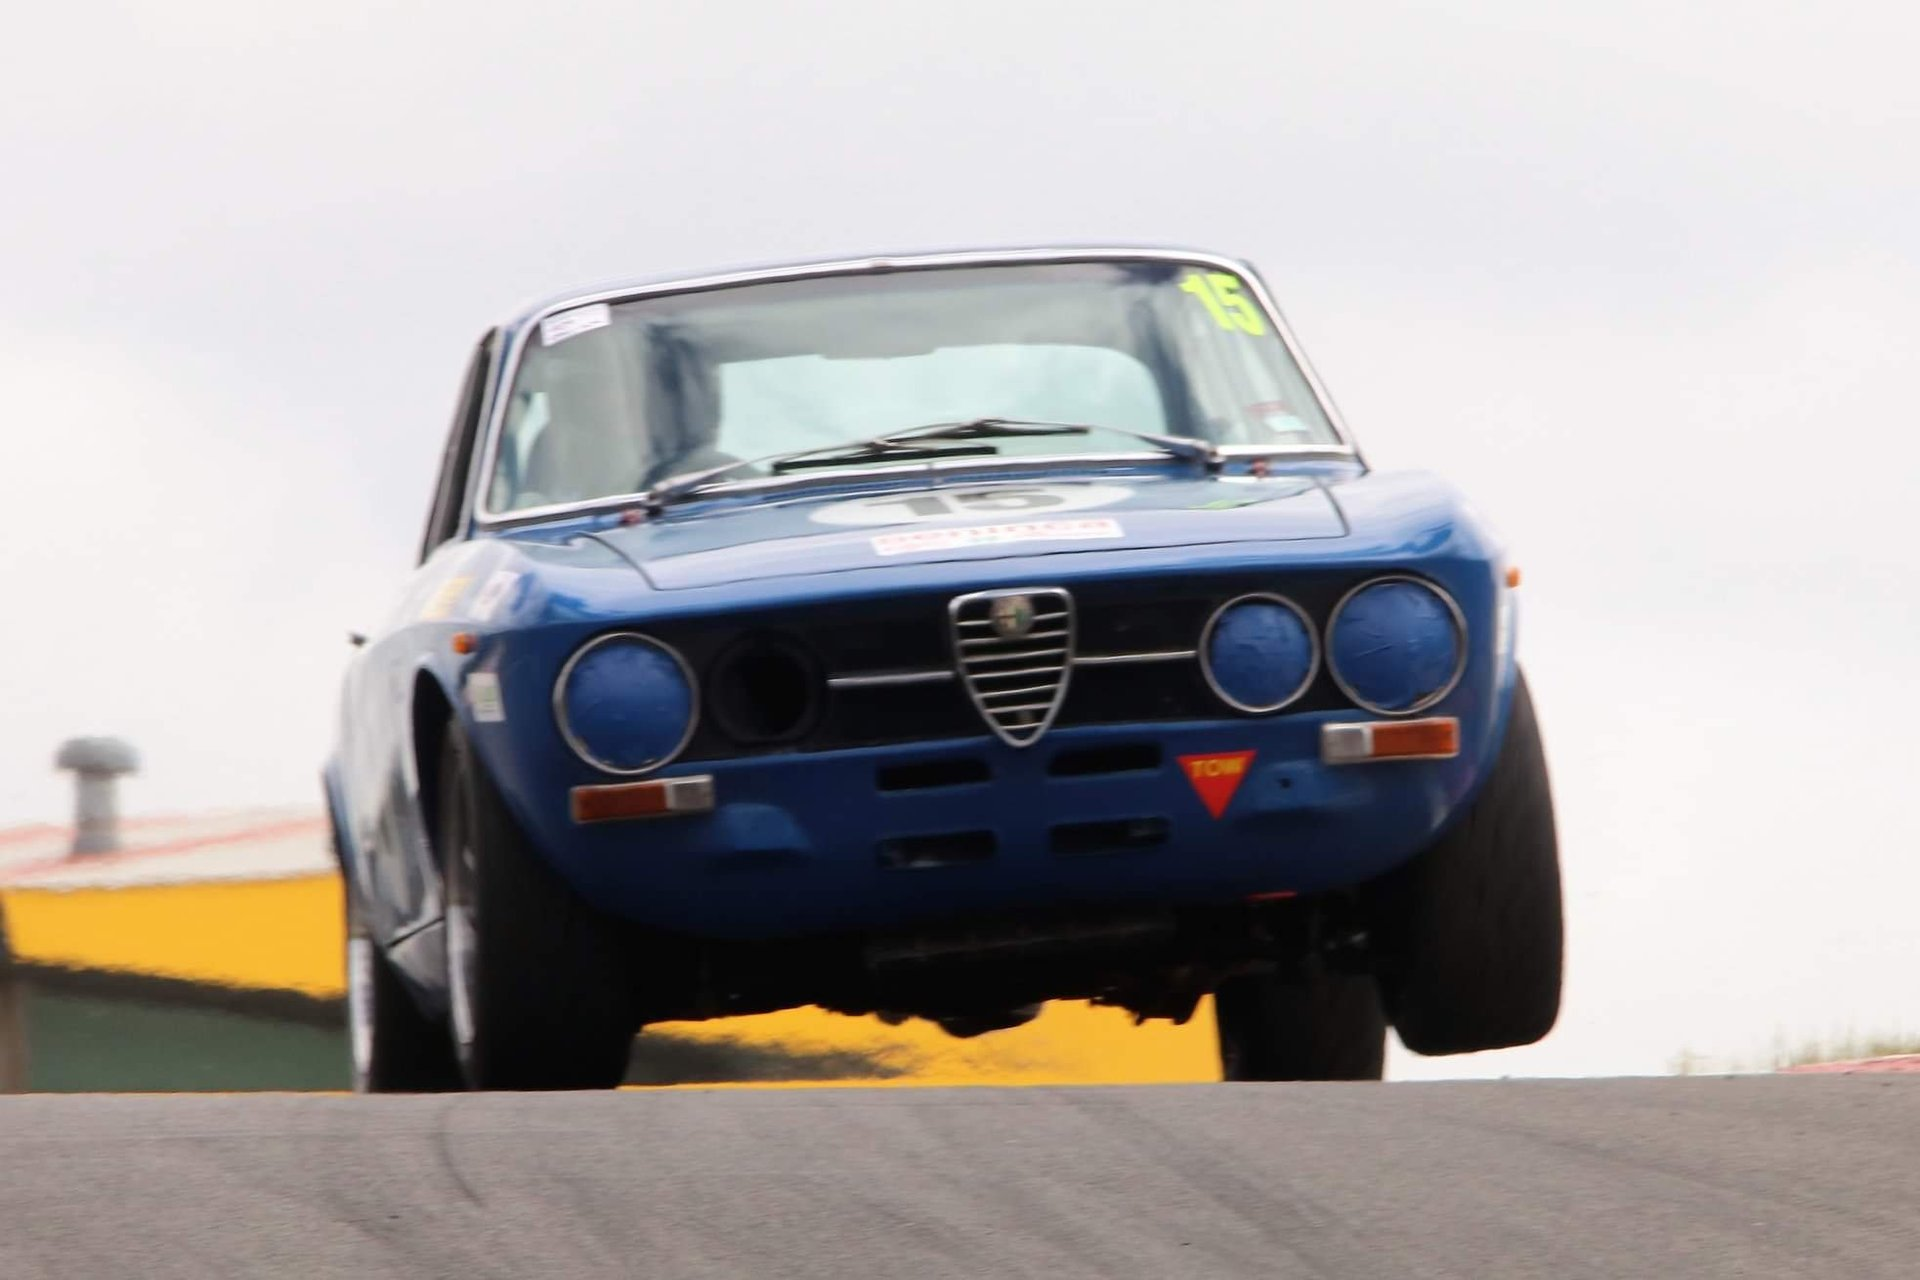 Showcase cover image for Backto105's 1972 Alfa Romeo 1750GTV